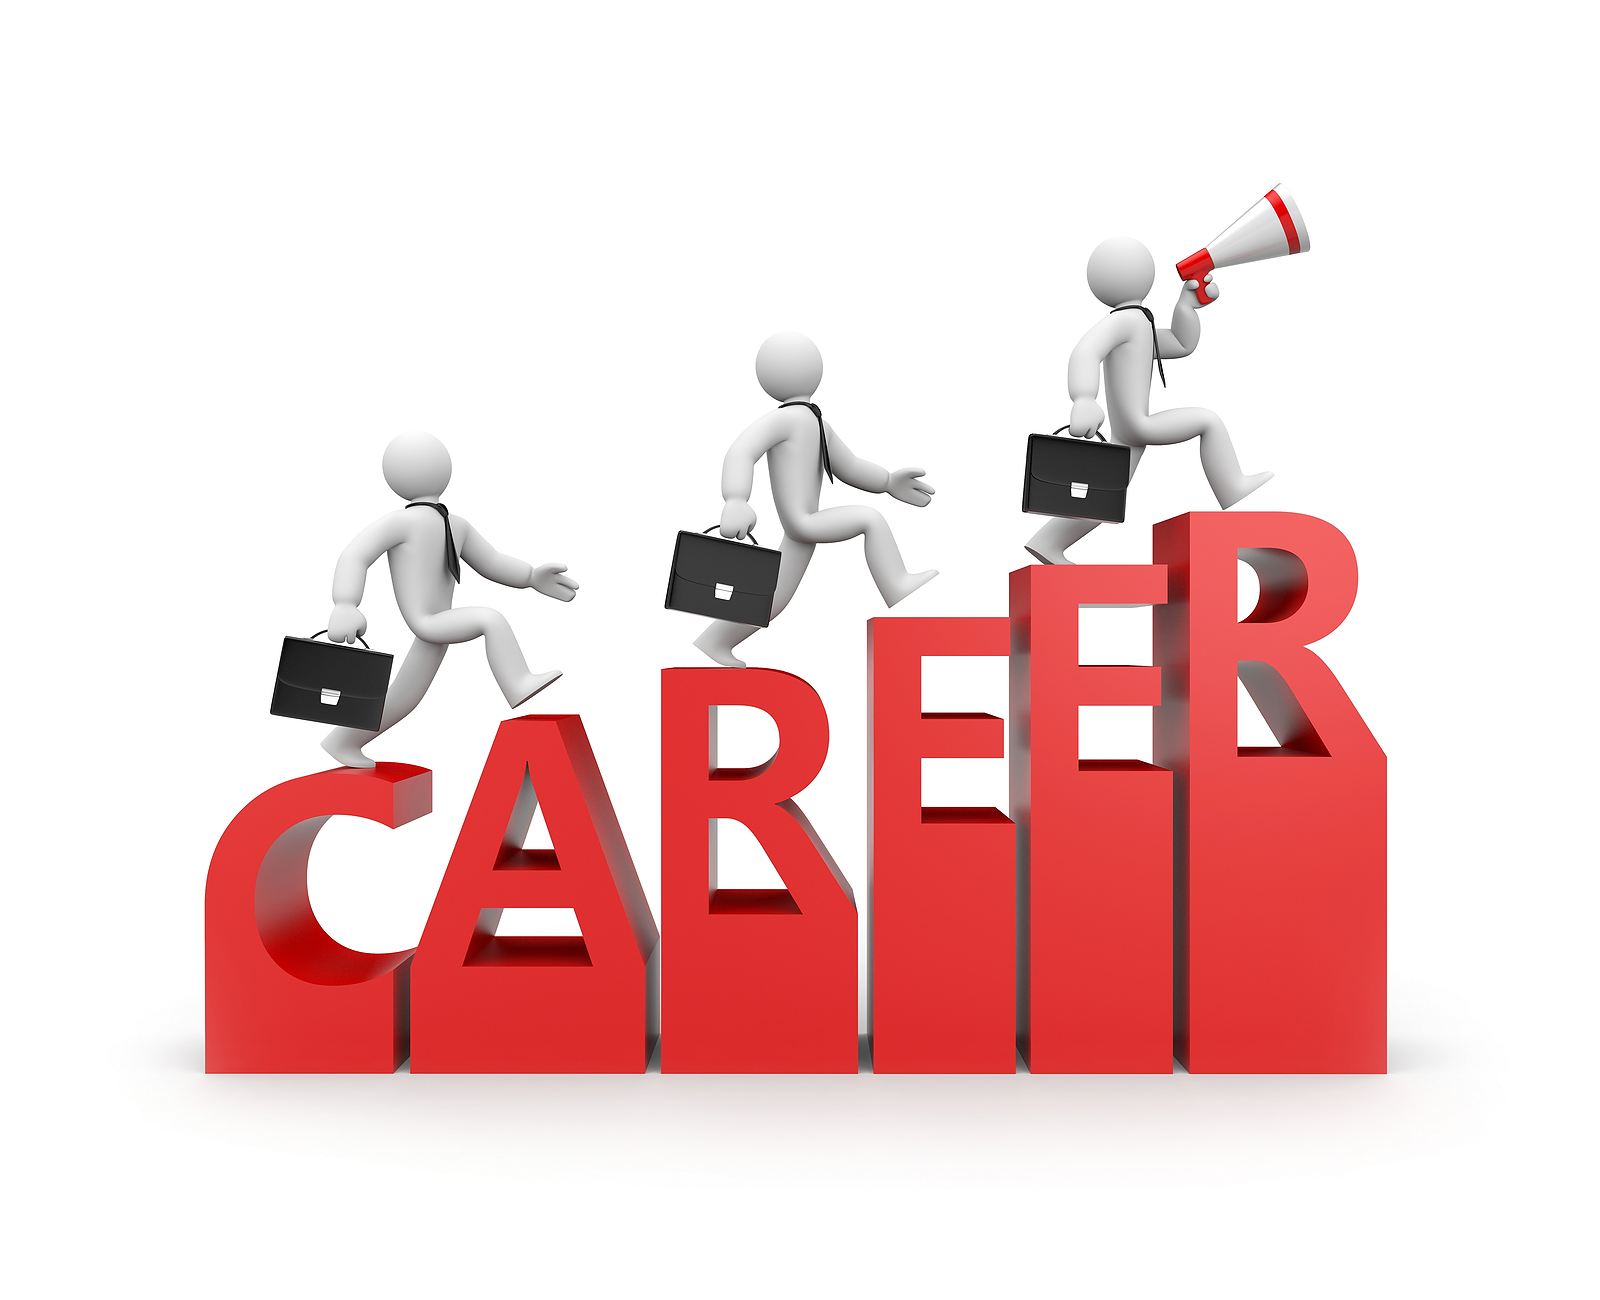 Careers clipart career development. Free advancement cliparts download